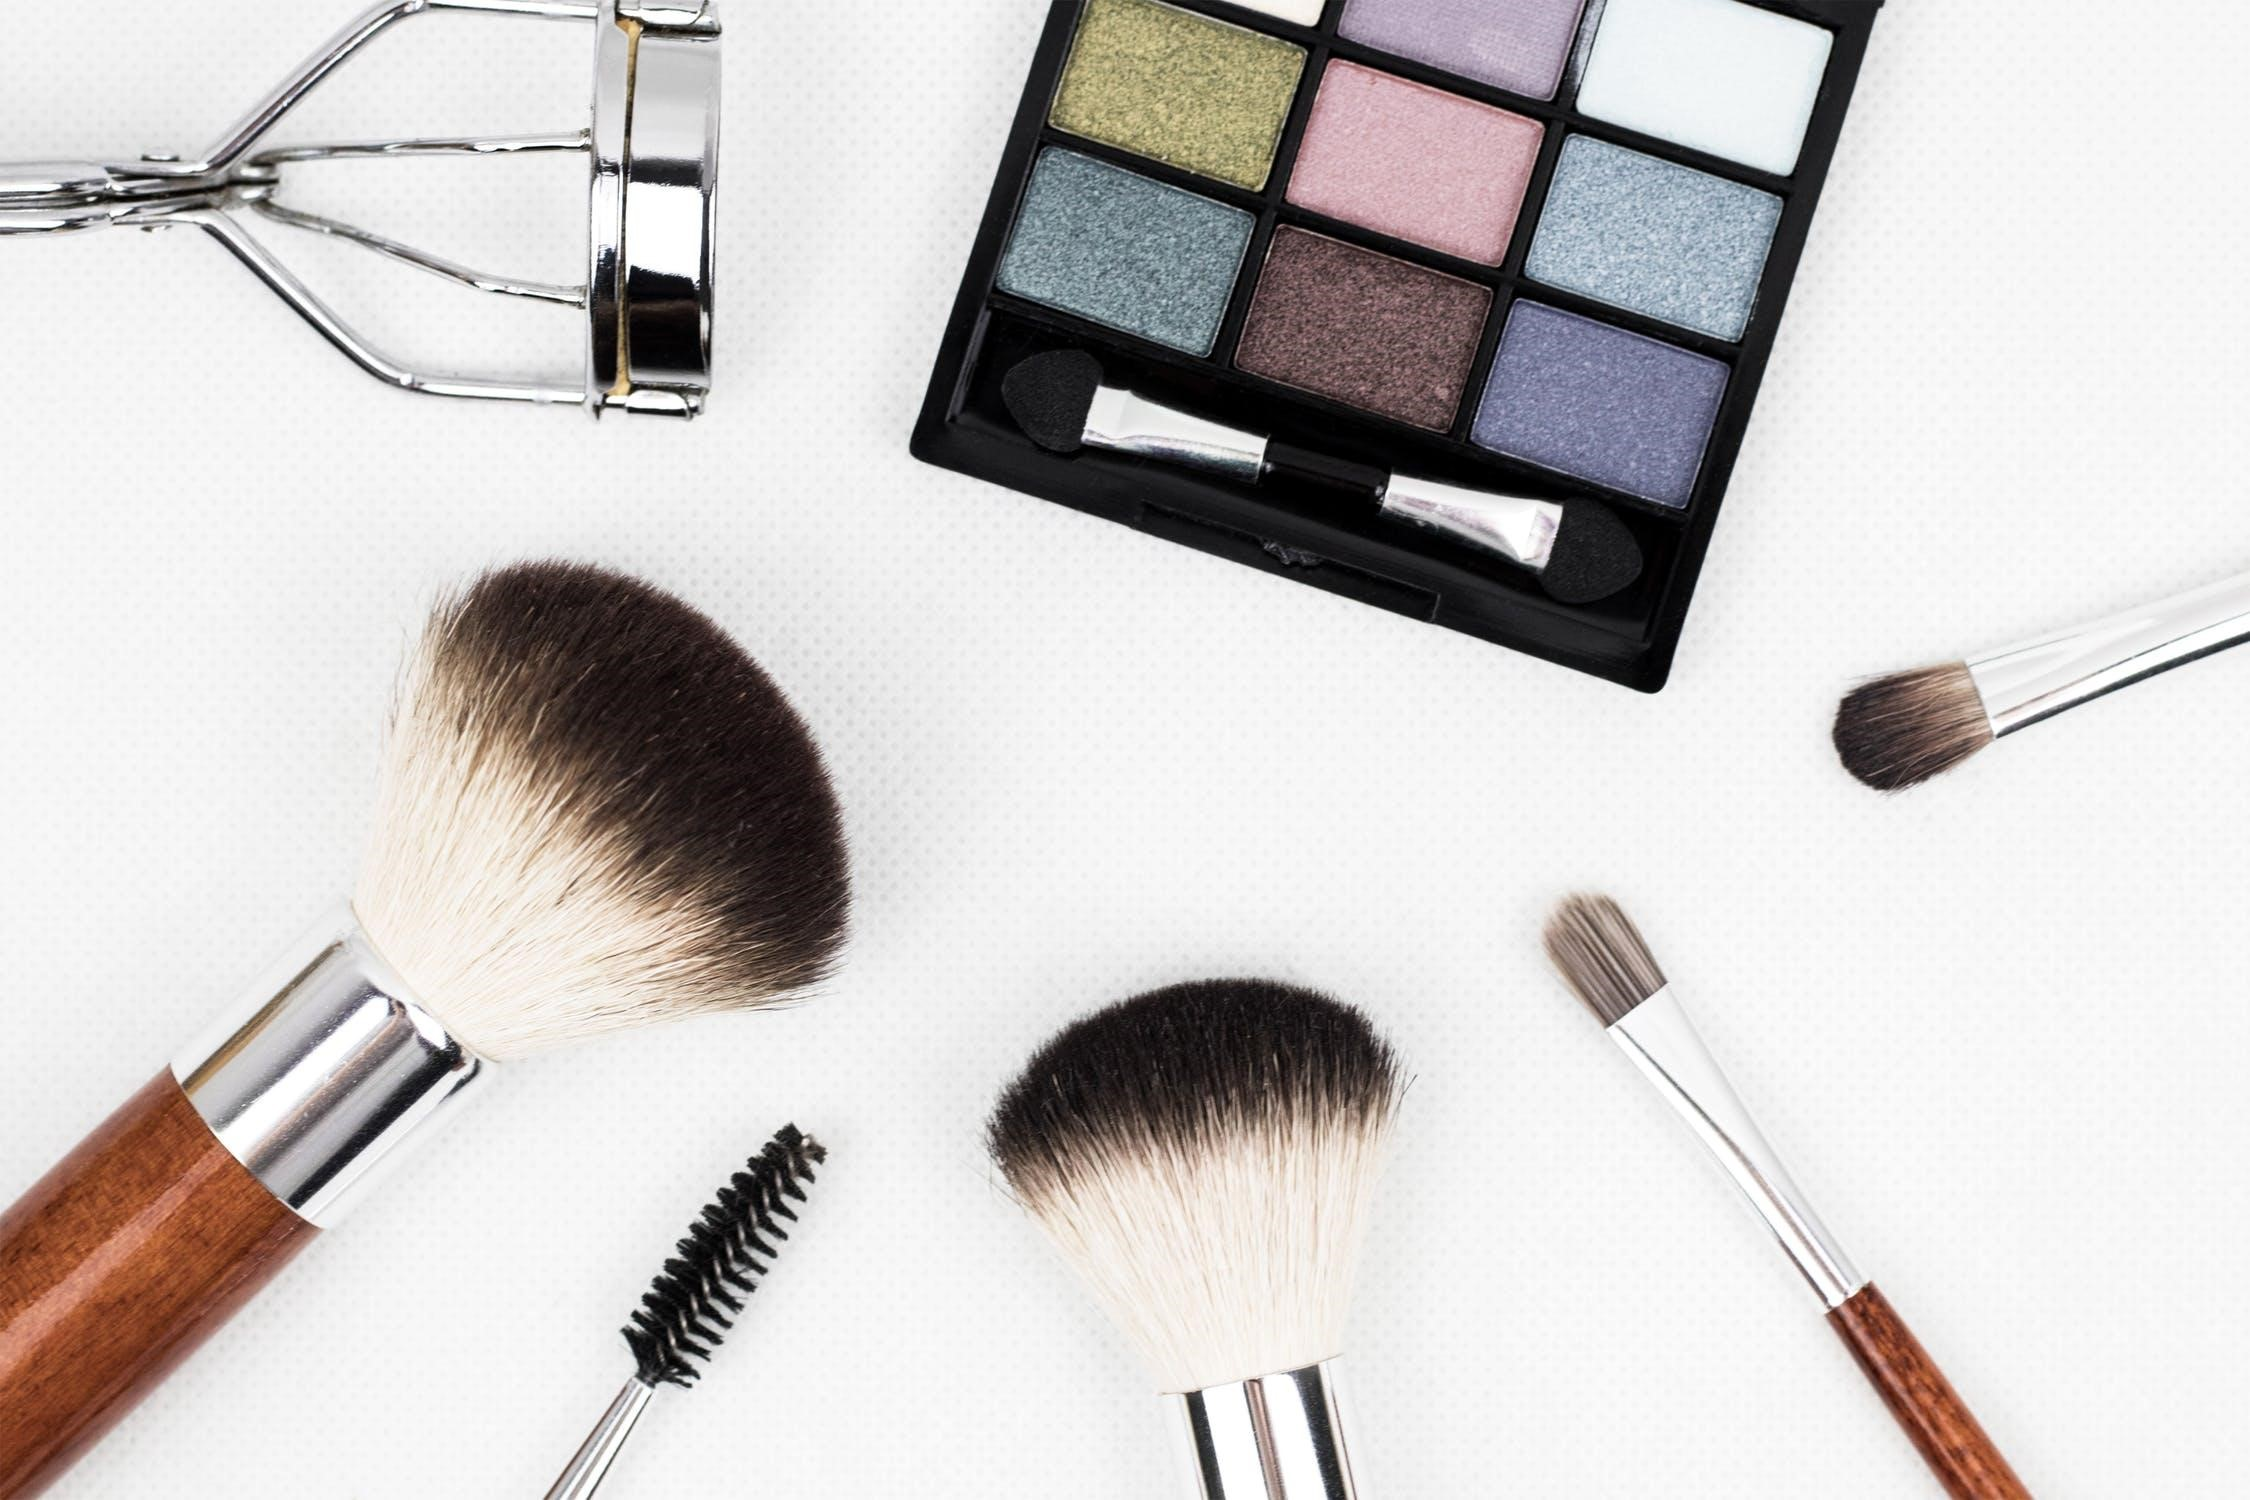 give your hair and makeup a trendy spin in 2019 - Makeup a Trendy 1 - Give Your Hair and Makeup a Trendy Spin in 2019